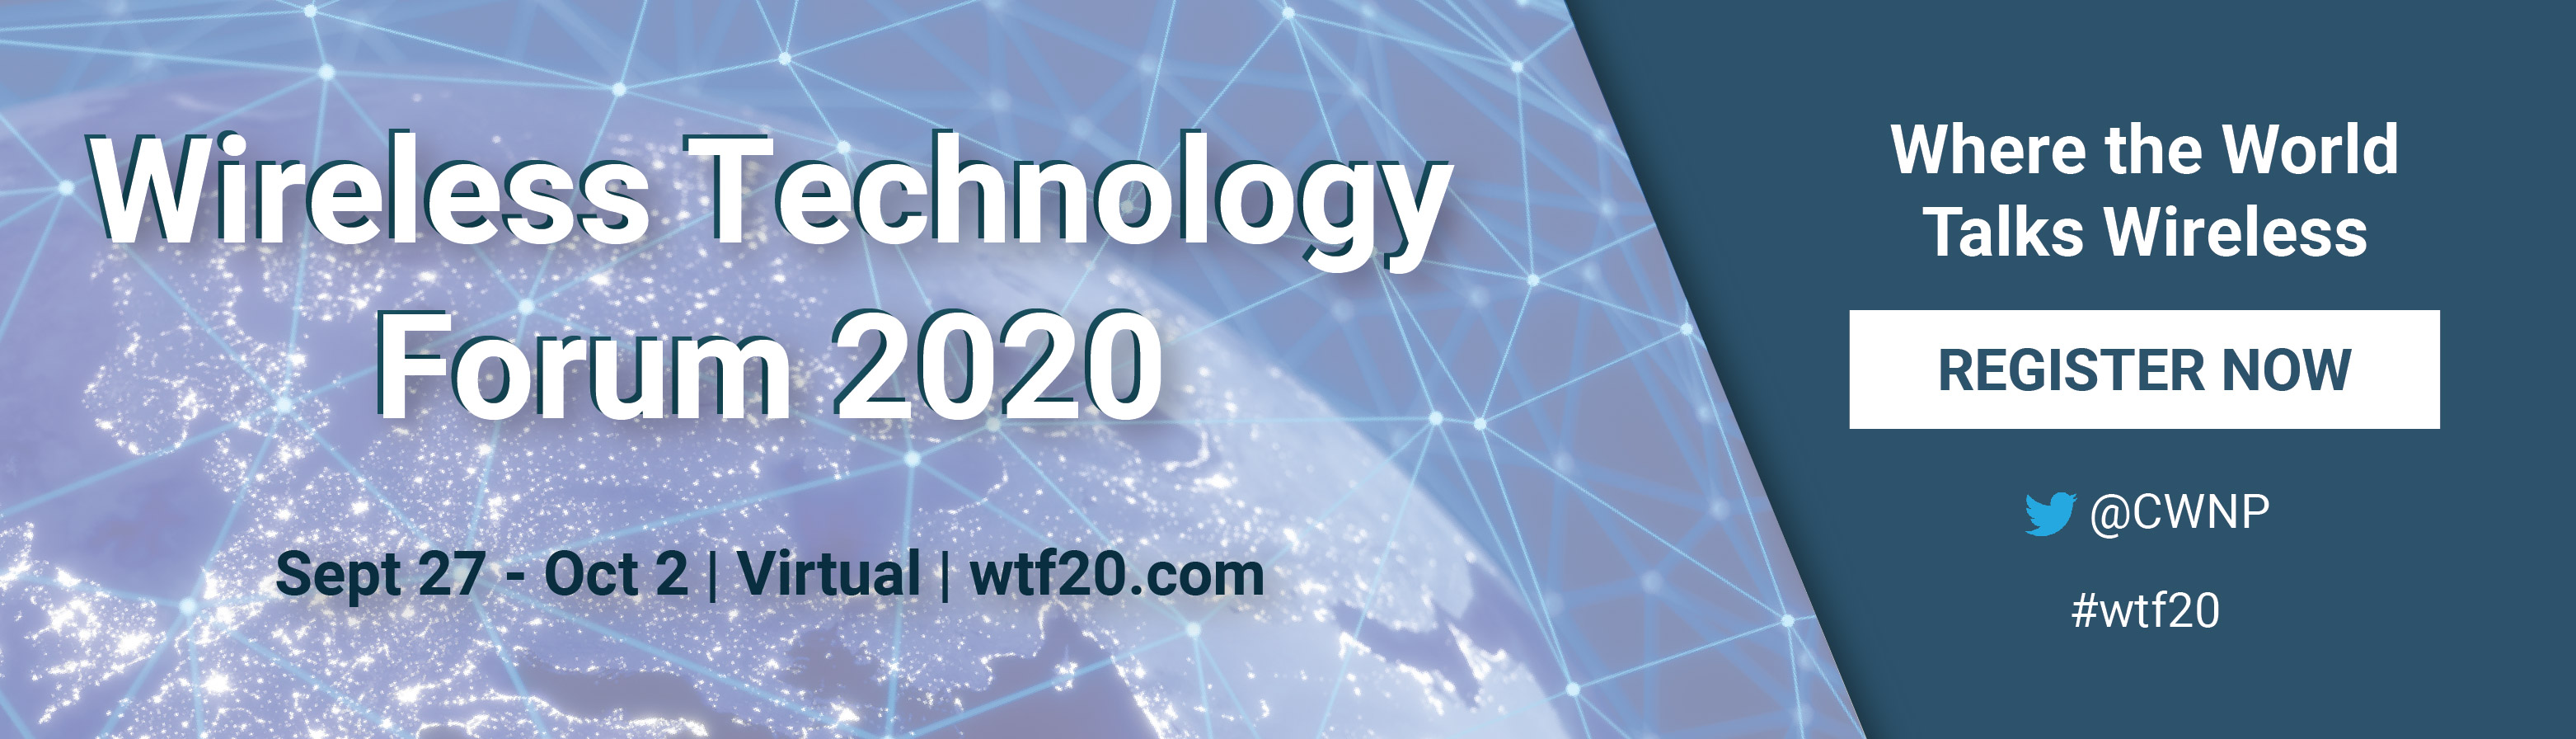 WireLess Technology Forum 2020